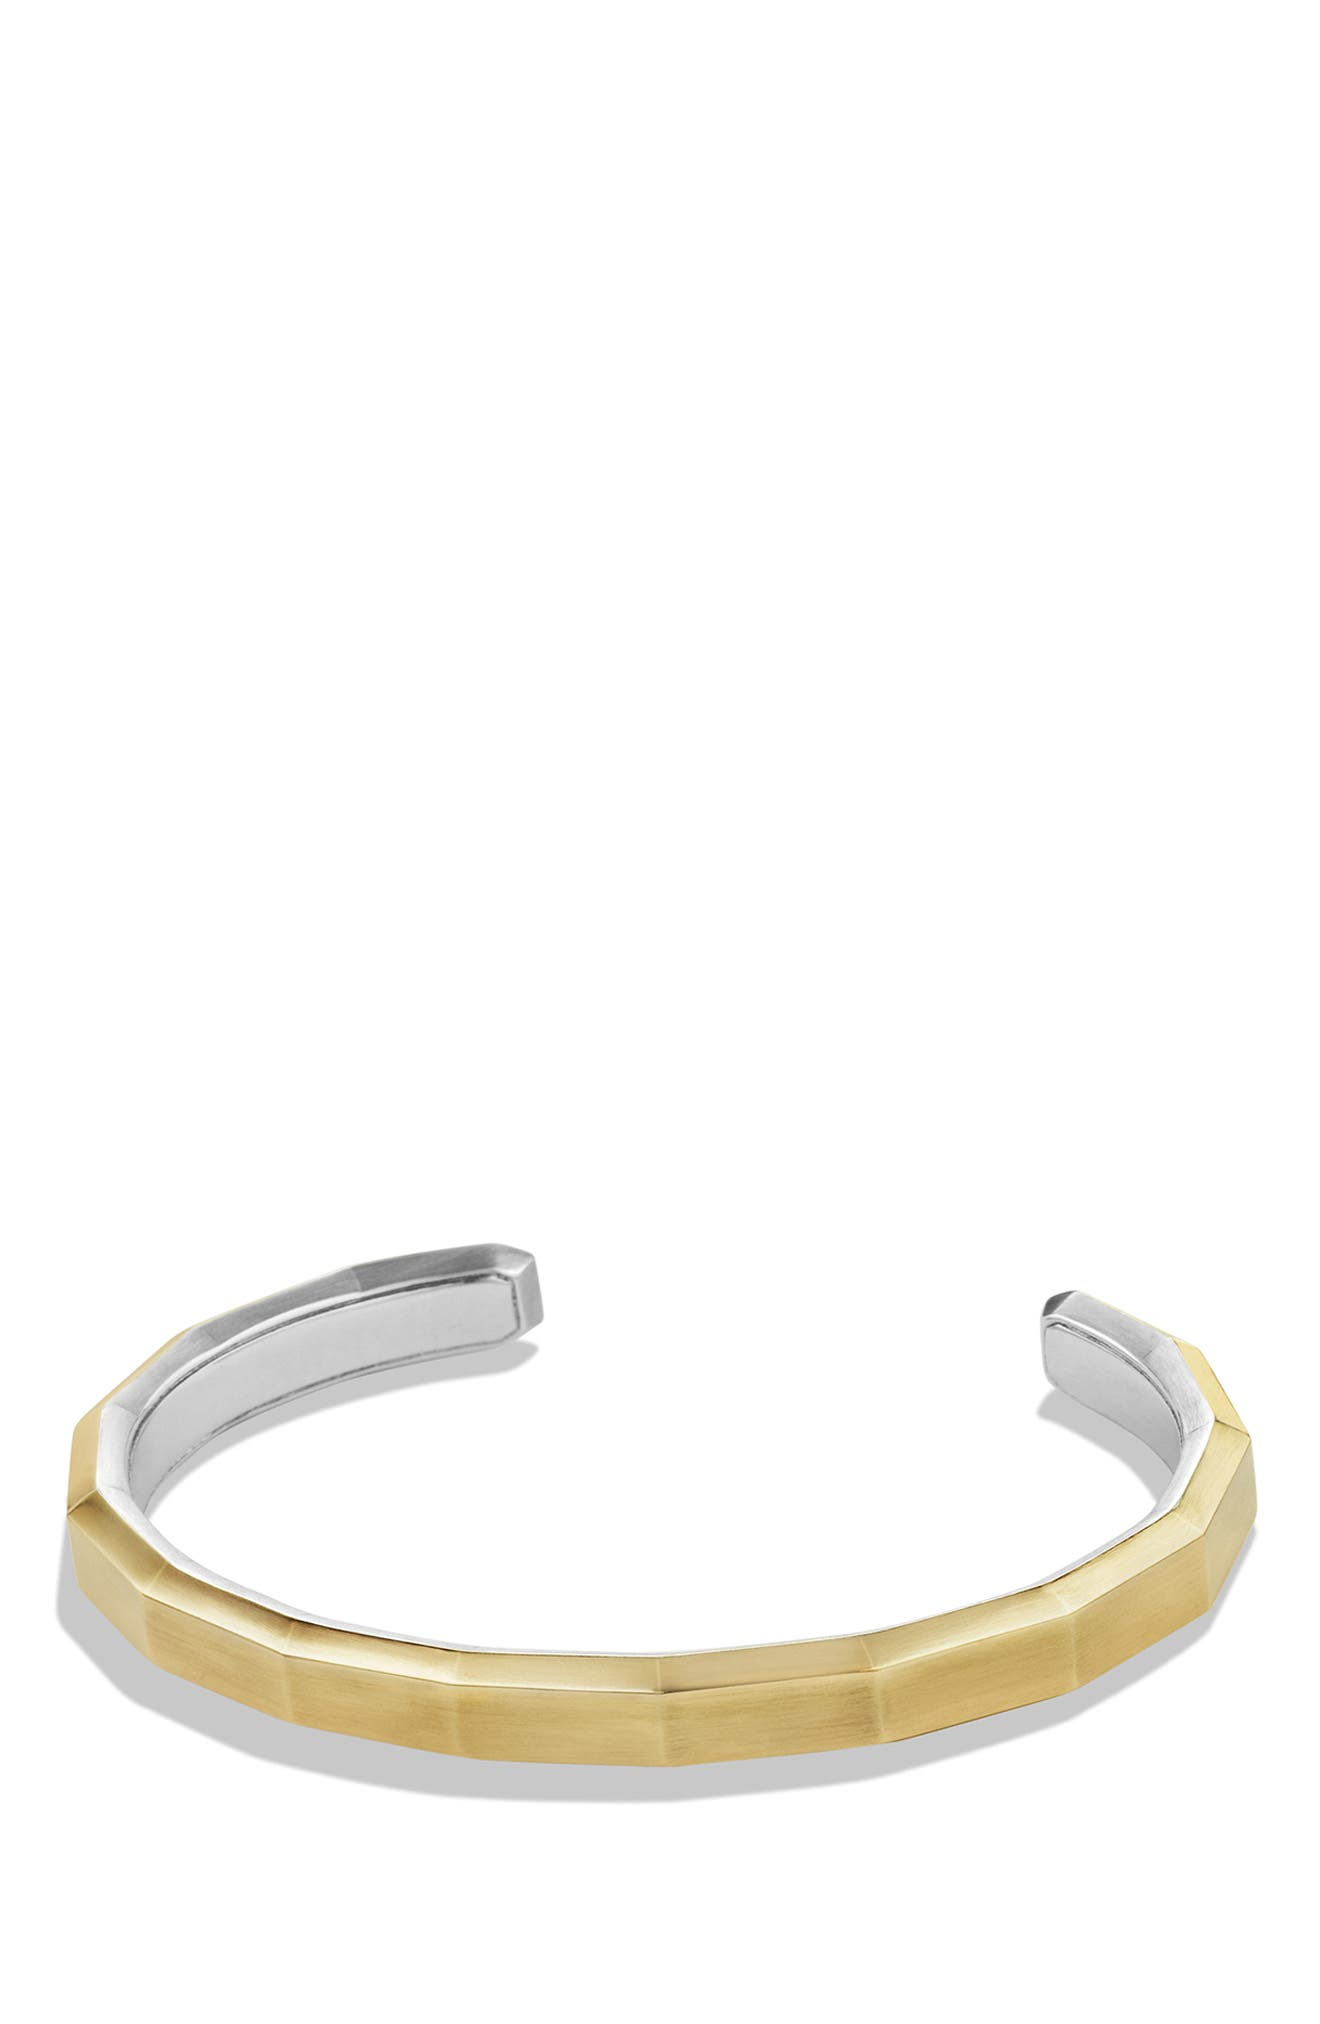 'Faceted Metal' Cuff Bracelet with 18k Gold,                             Alternate thumbnail 3, color,                             041